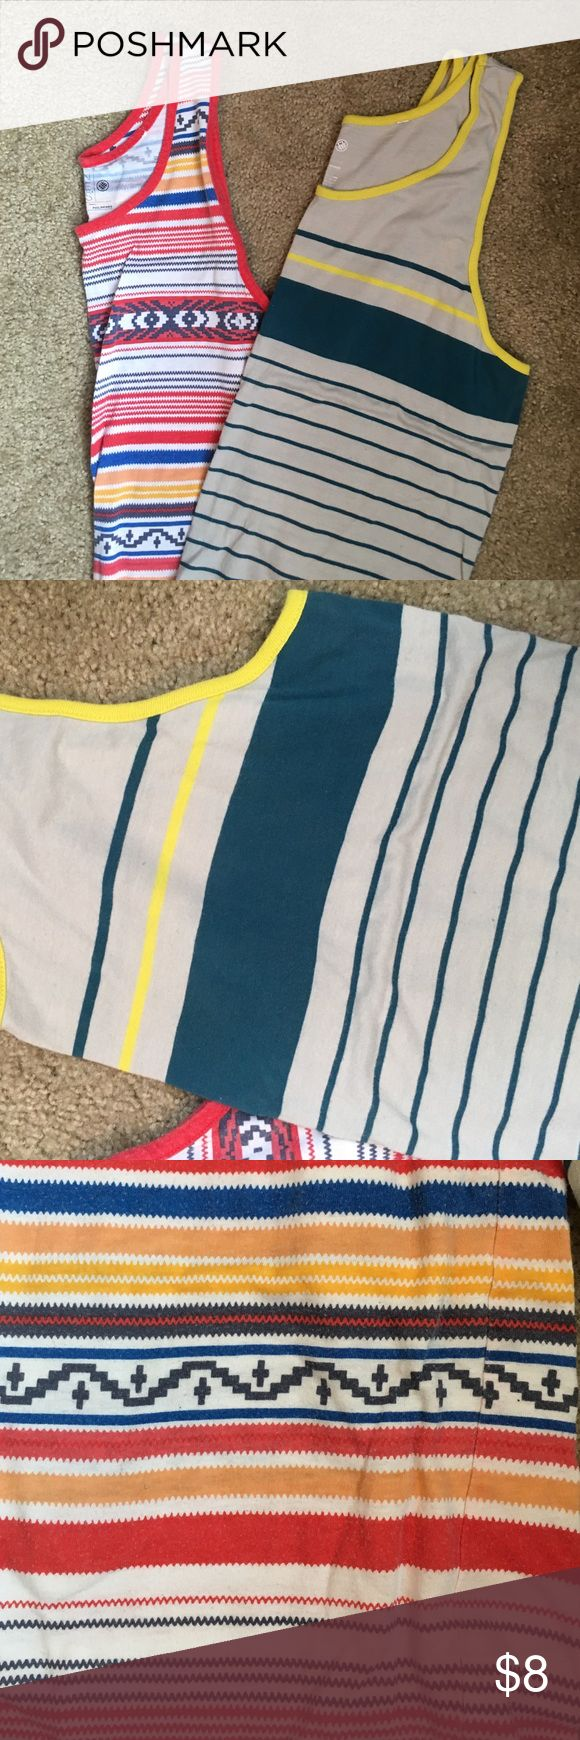 Men's Pacsun tank tops Two Pacsun summer tanks. Great for beach wear. Slightly worn. Smoke and pet free home! PacSun Shirts Tank Tops